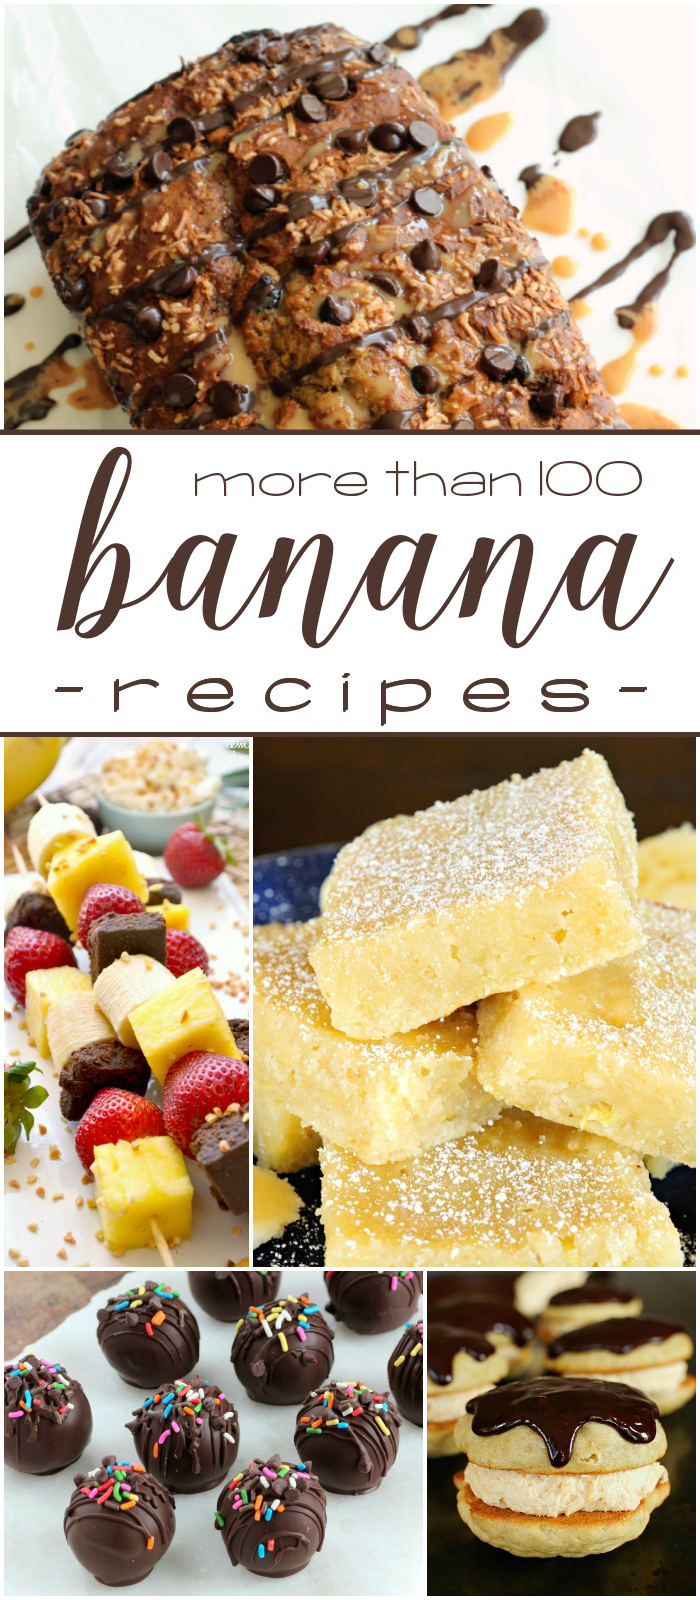 More than 100 banana recipes!